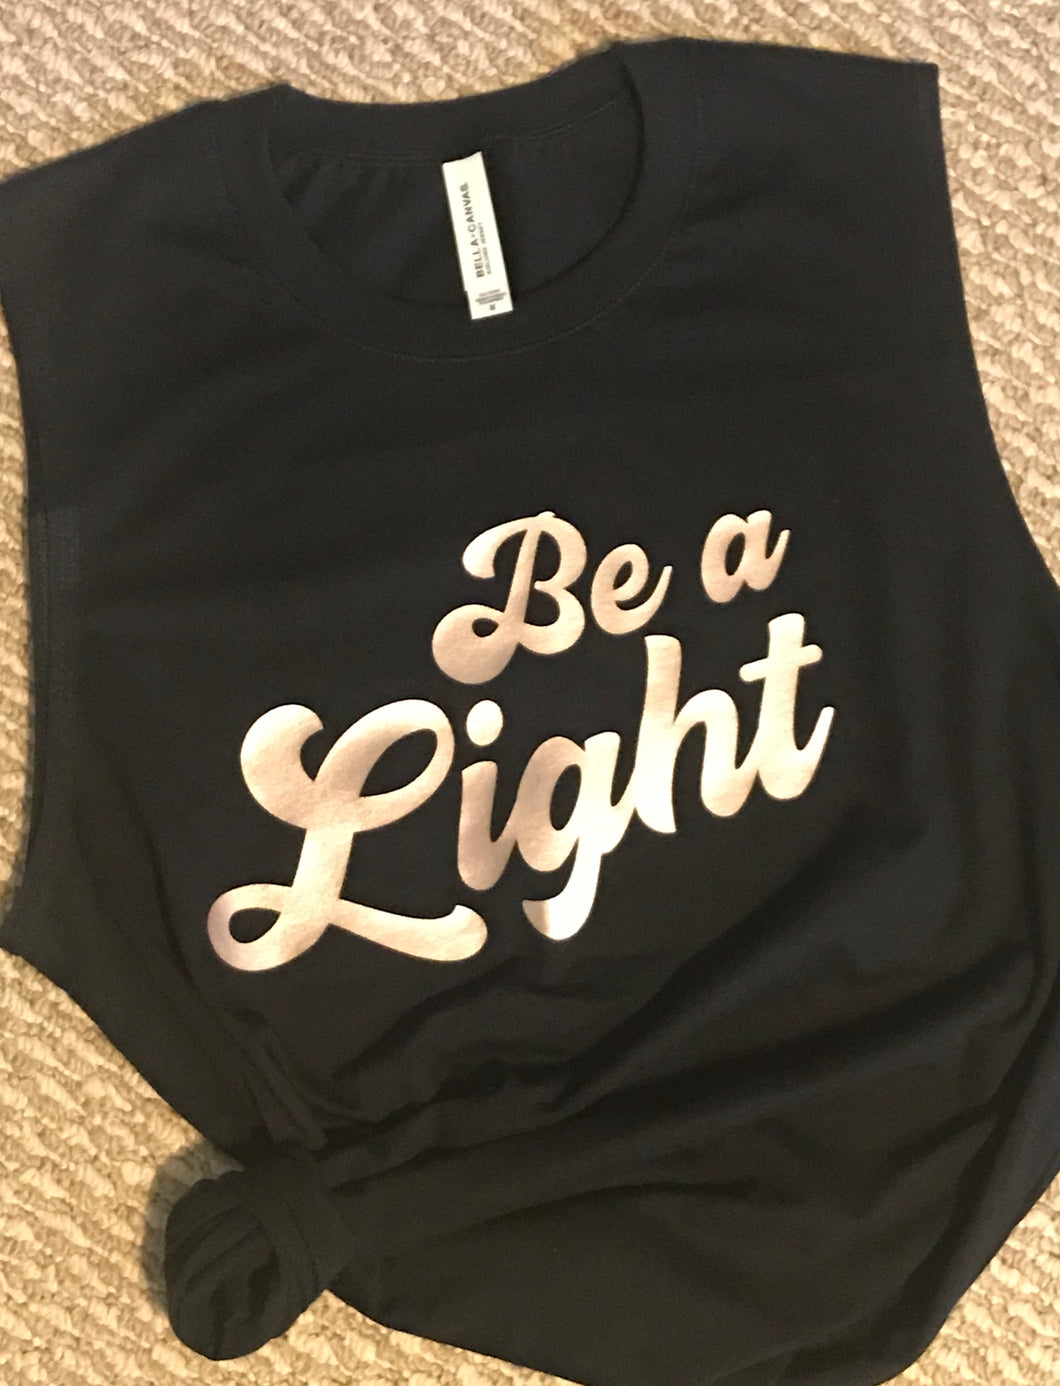 Be A Light muscle tank or short sleeve t - Buggy Boos Embroidery